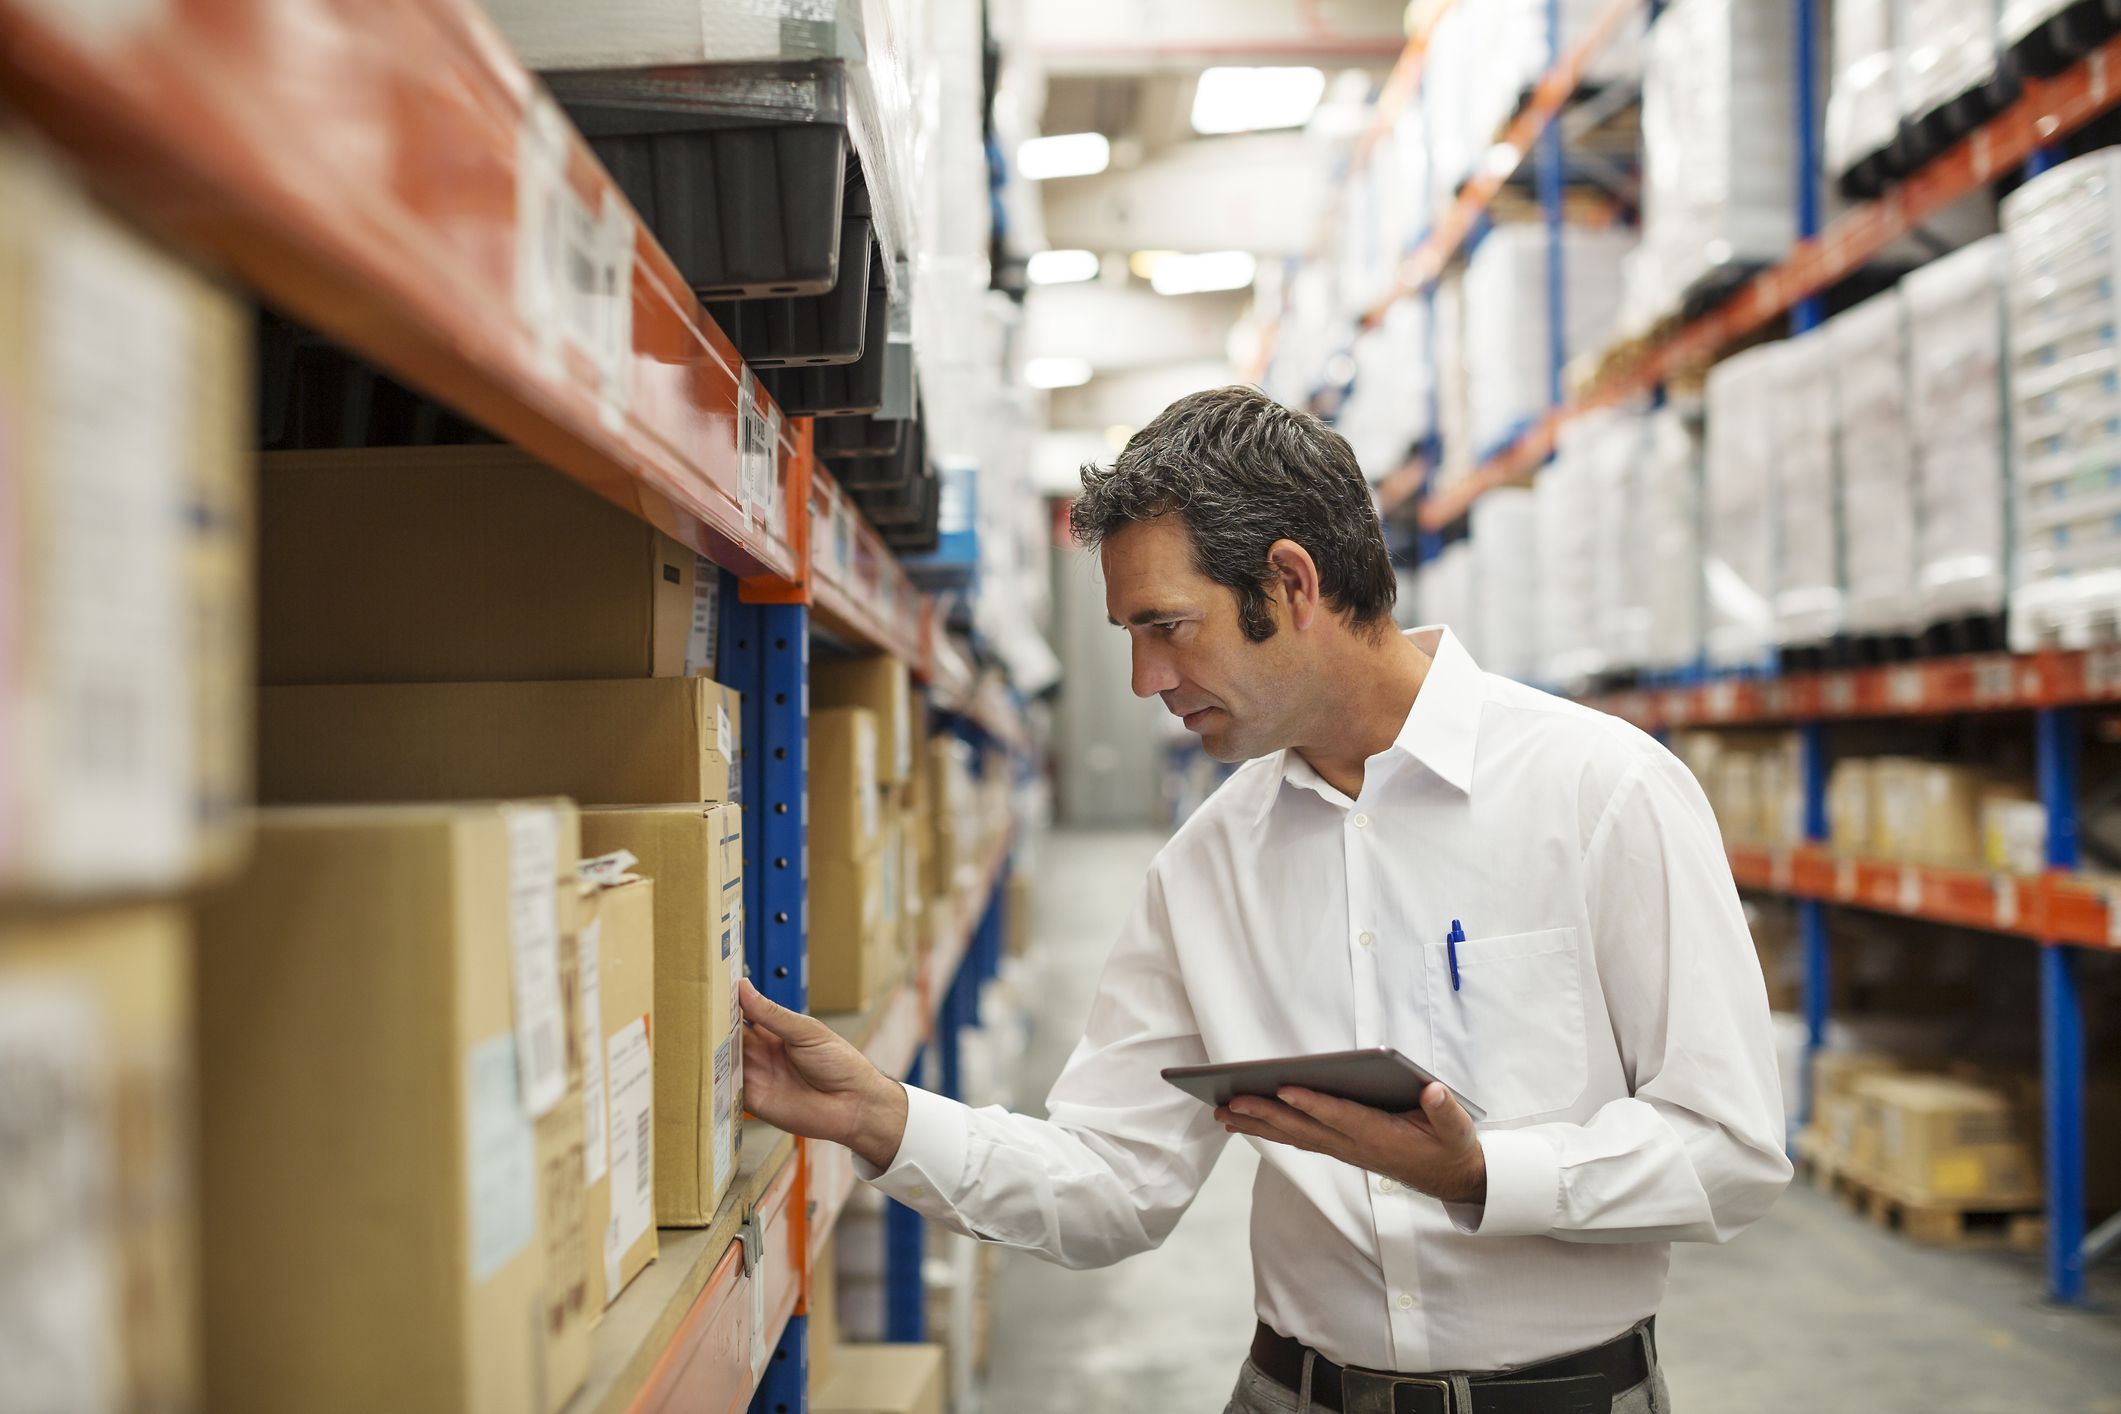 The individual tasks of freight processing vary from one retailer to